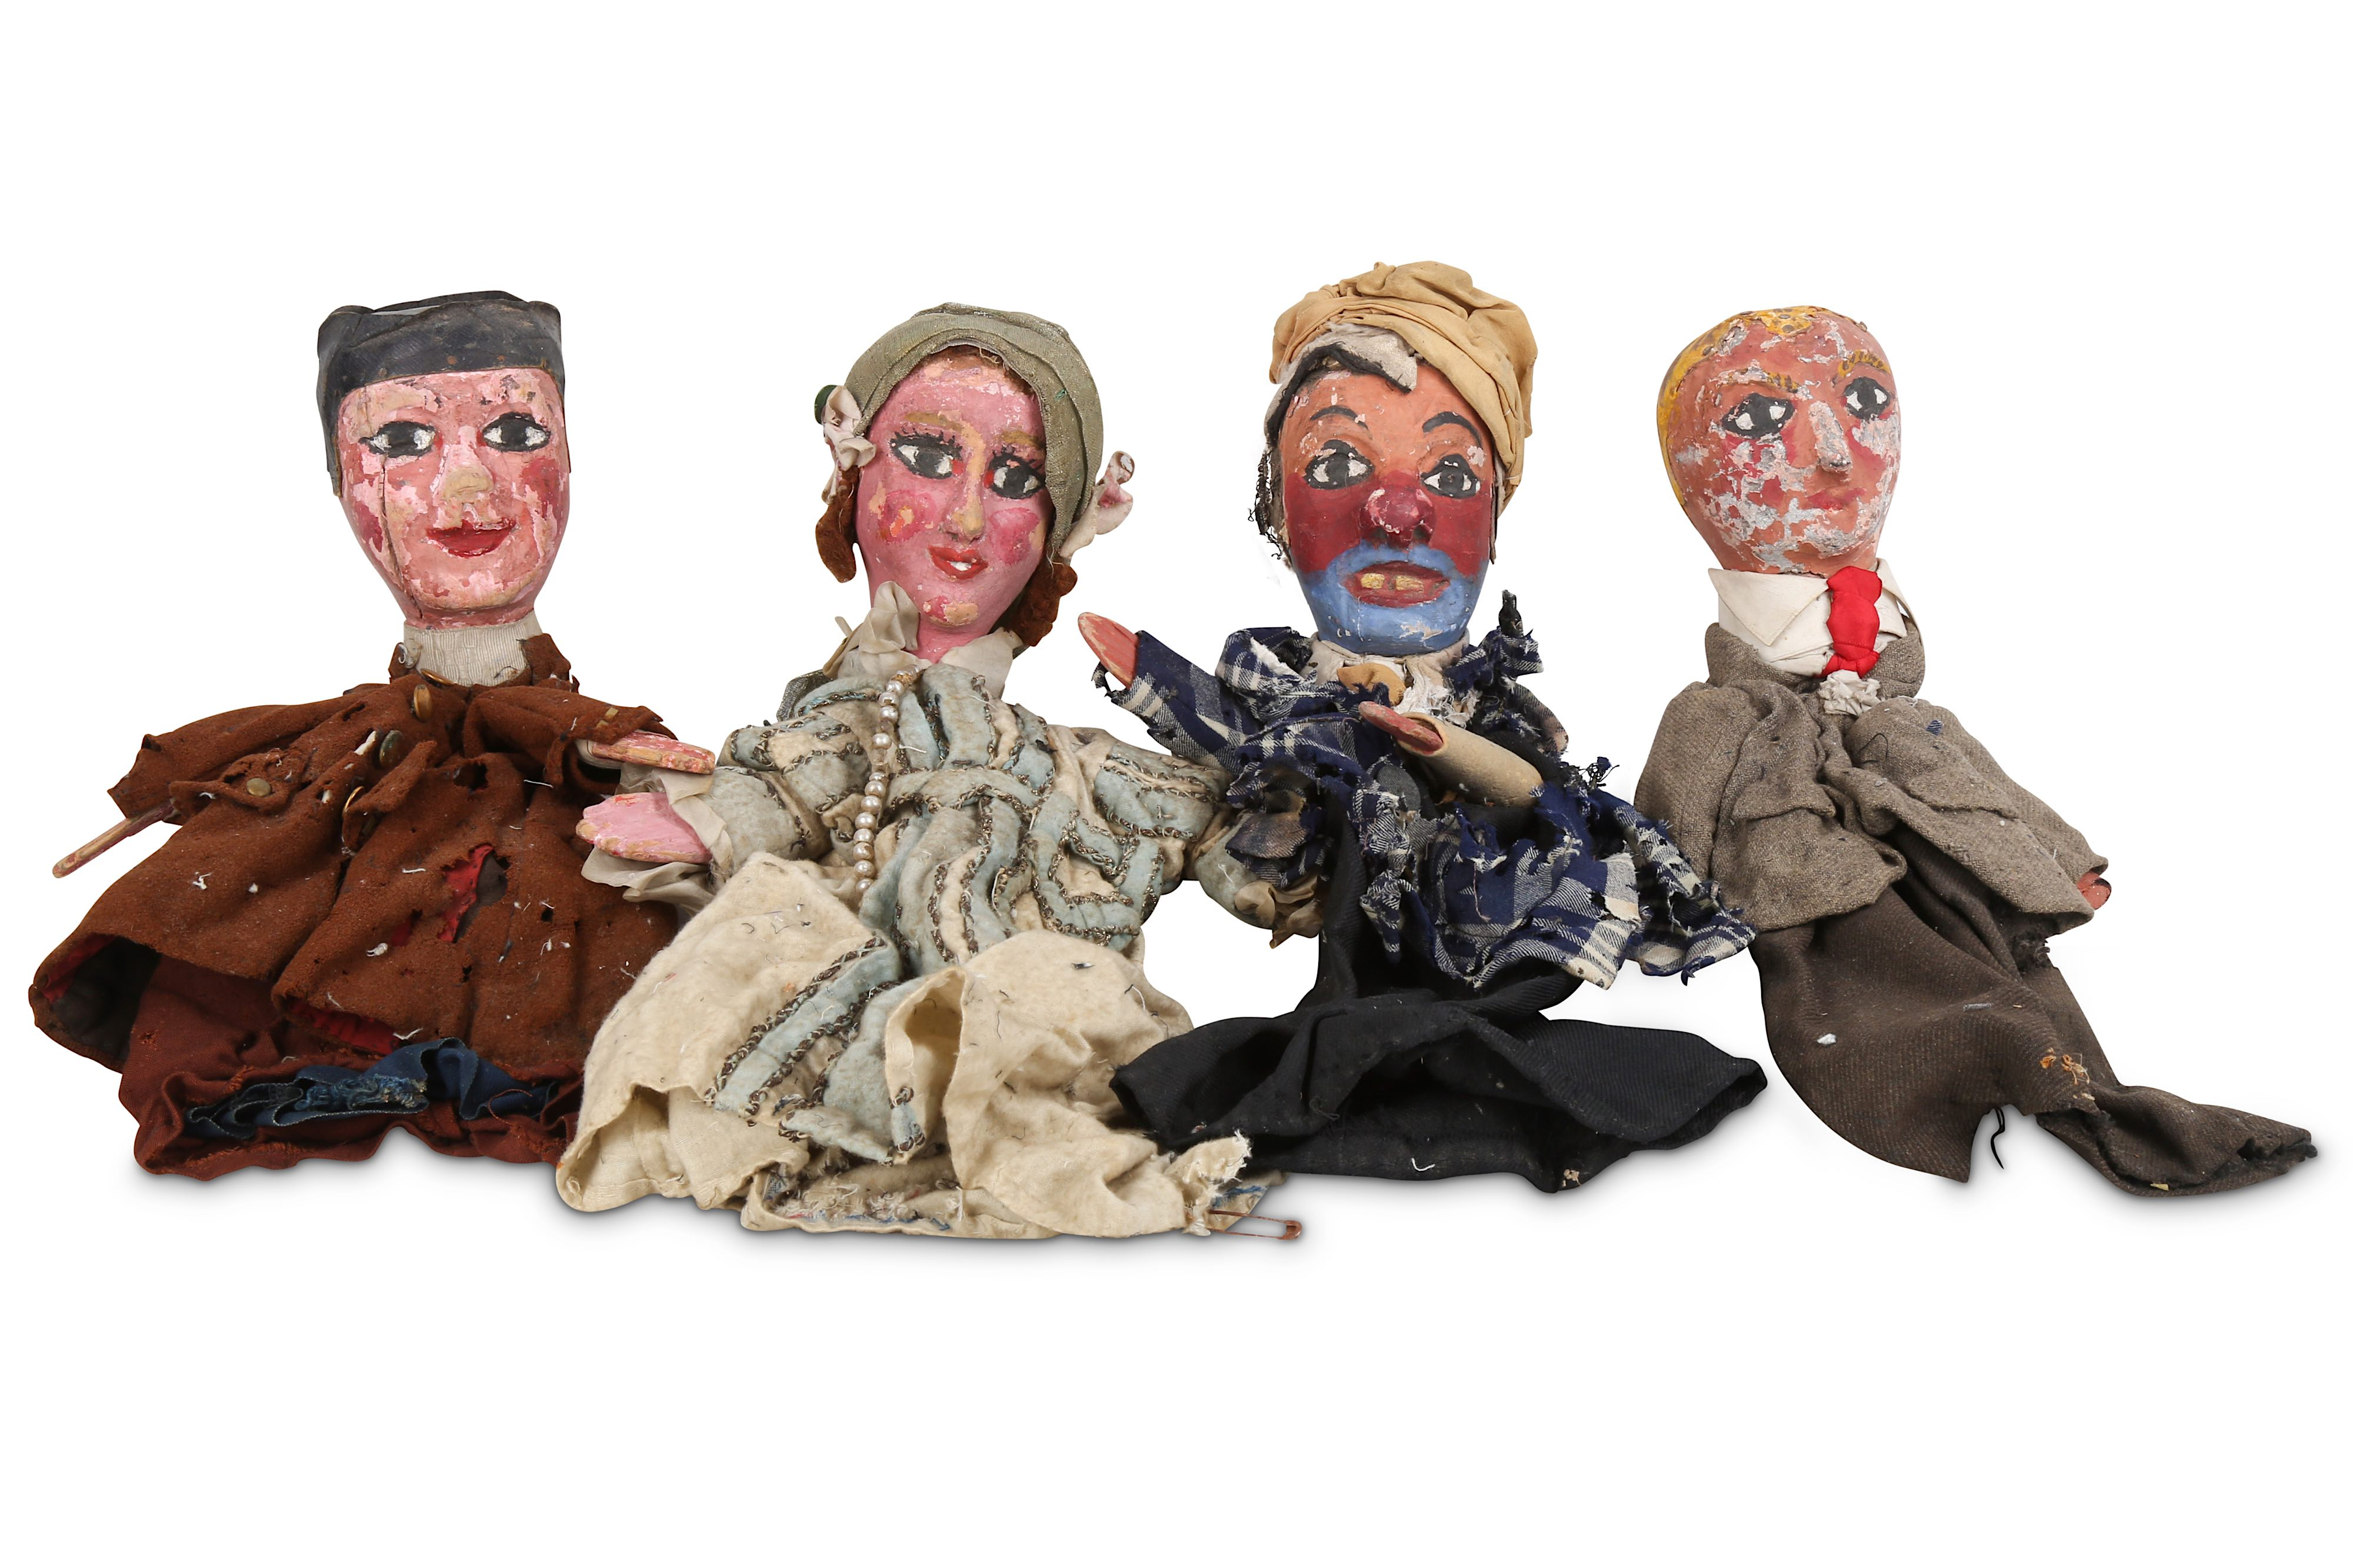 A SET OF EIGHT 1930'S FRENCH HANDPAINTED AND CARVED WOOD PUPPETS FOR 'LE GUIGNOL DES ENFANTS' - Image 2 of 4